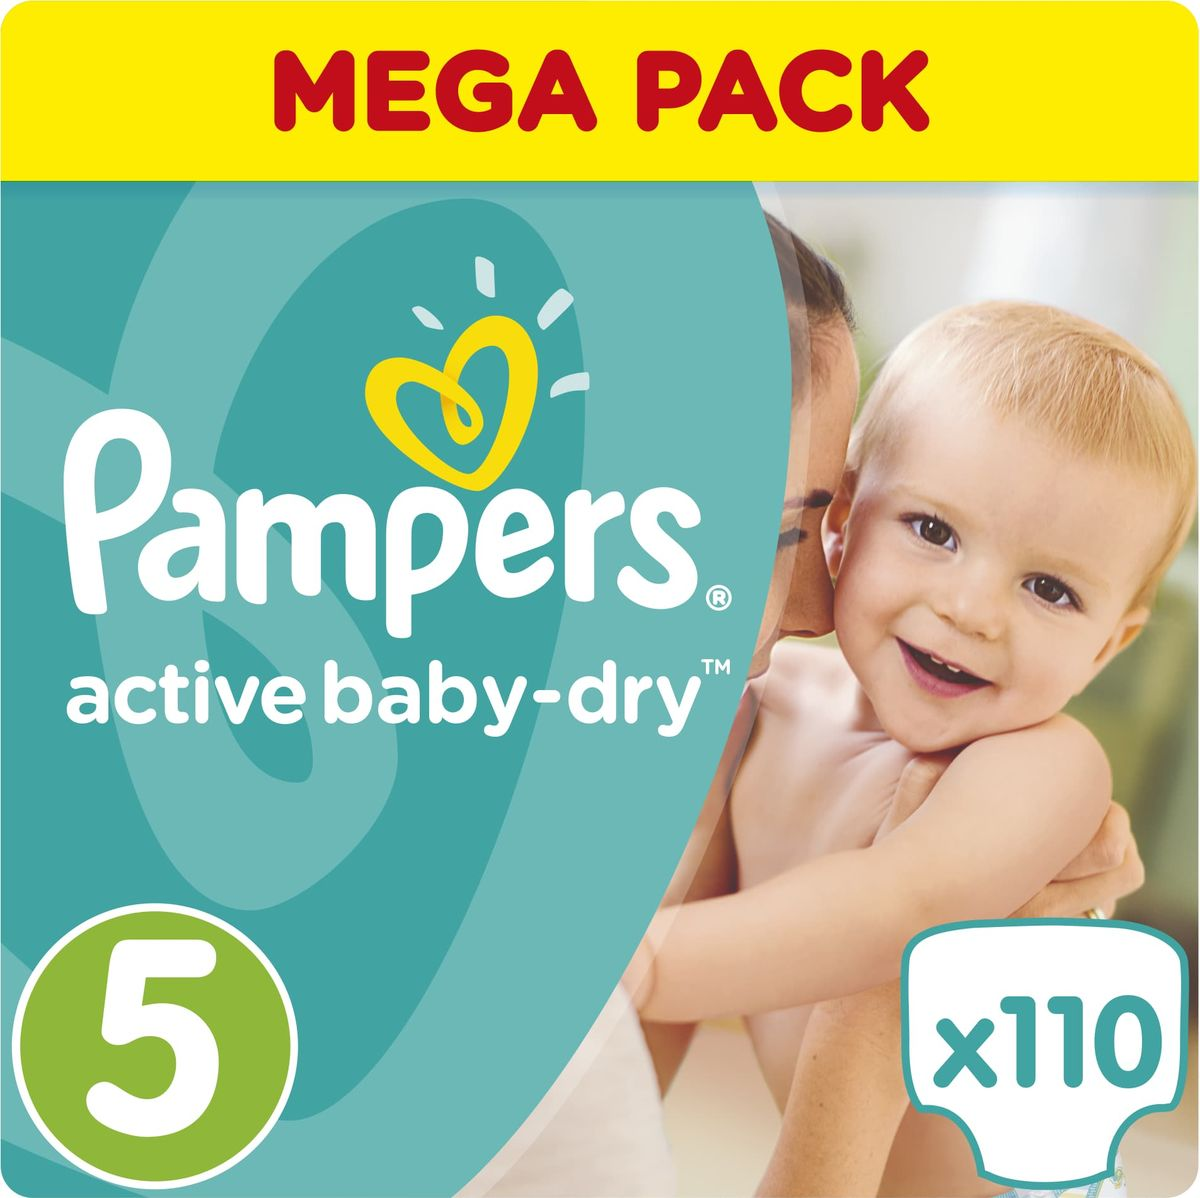 Pampers Подгузники Active Baby-Dry 11-23 кг (размер 5) 110 шт подгузники pampers active baby dry размер 4 7 14 кг 132 шт